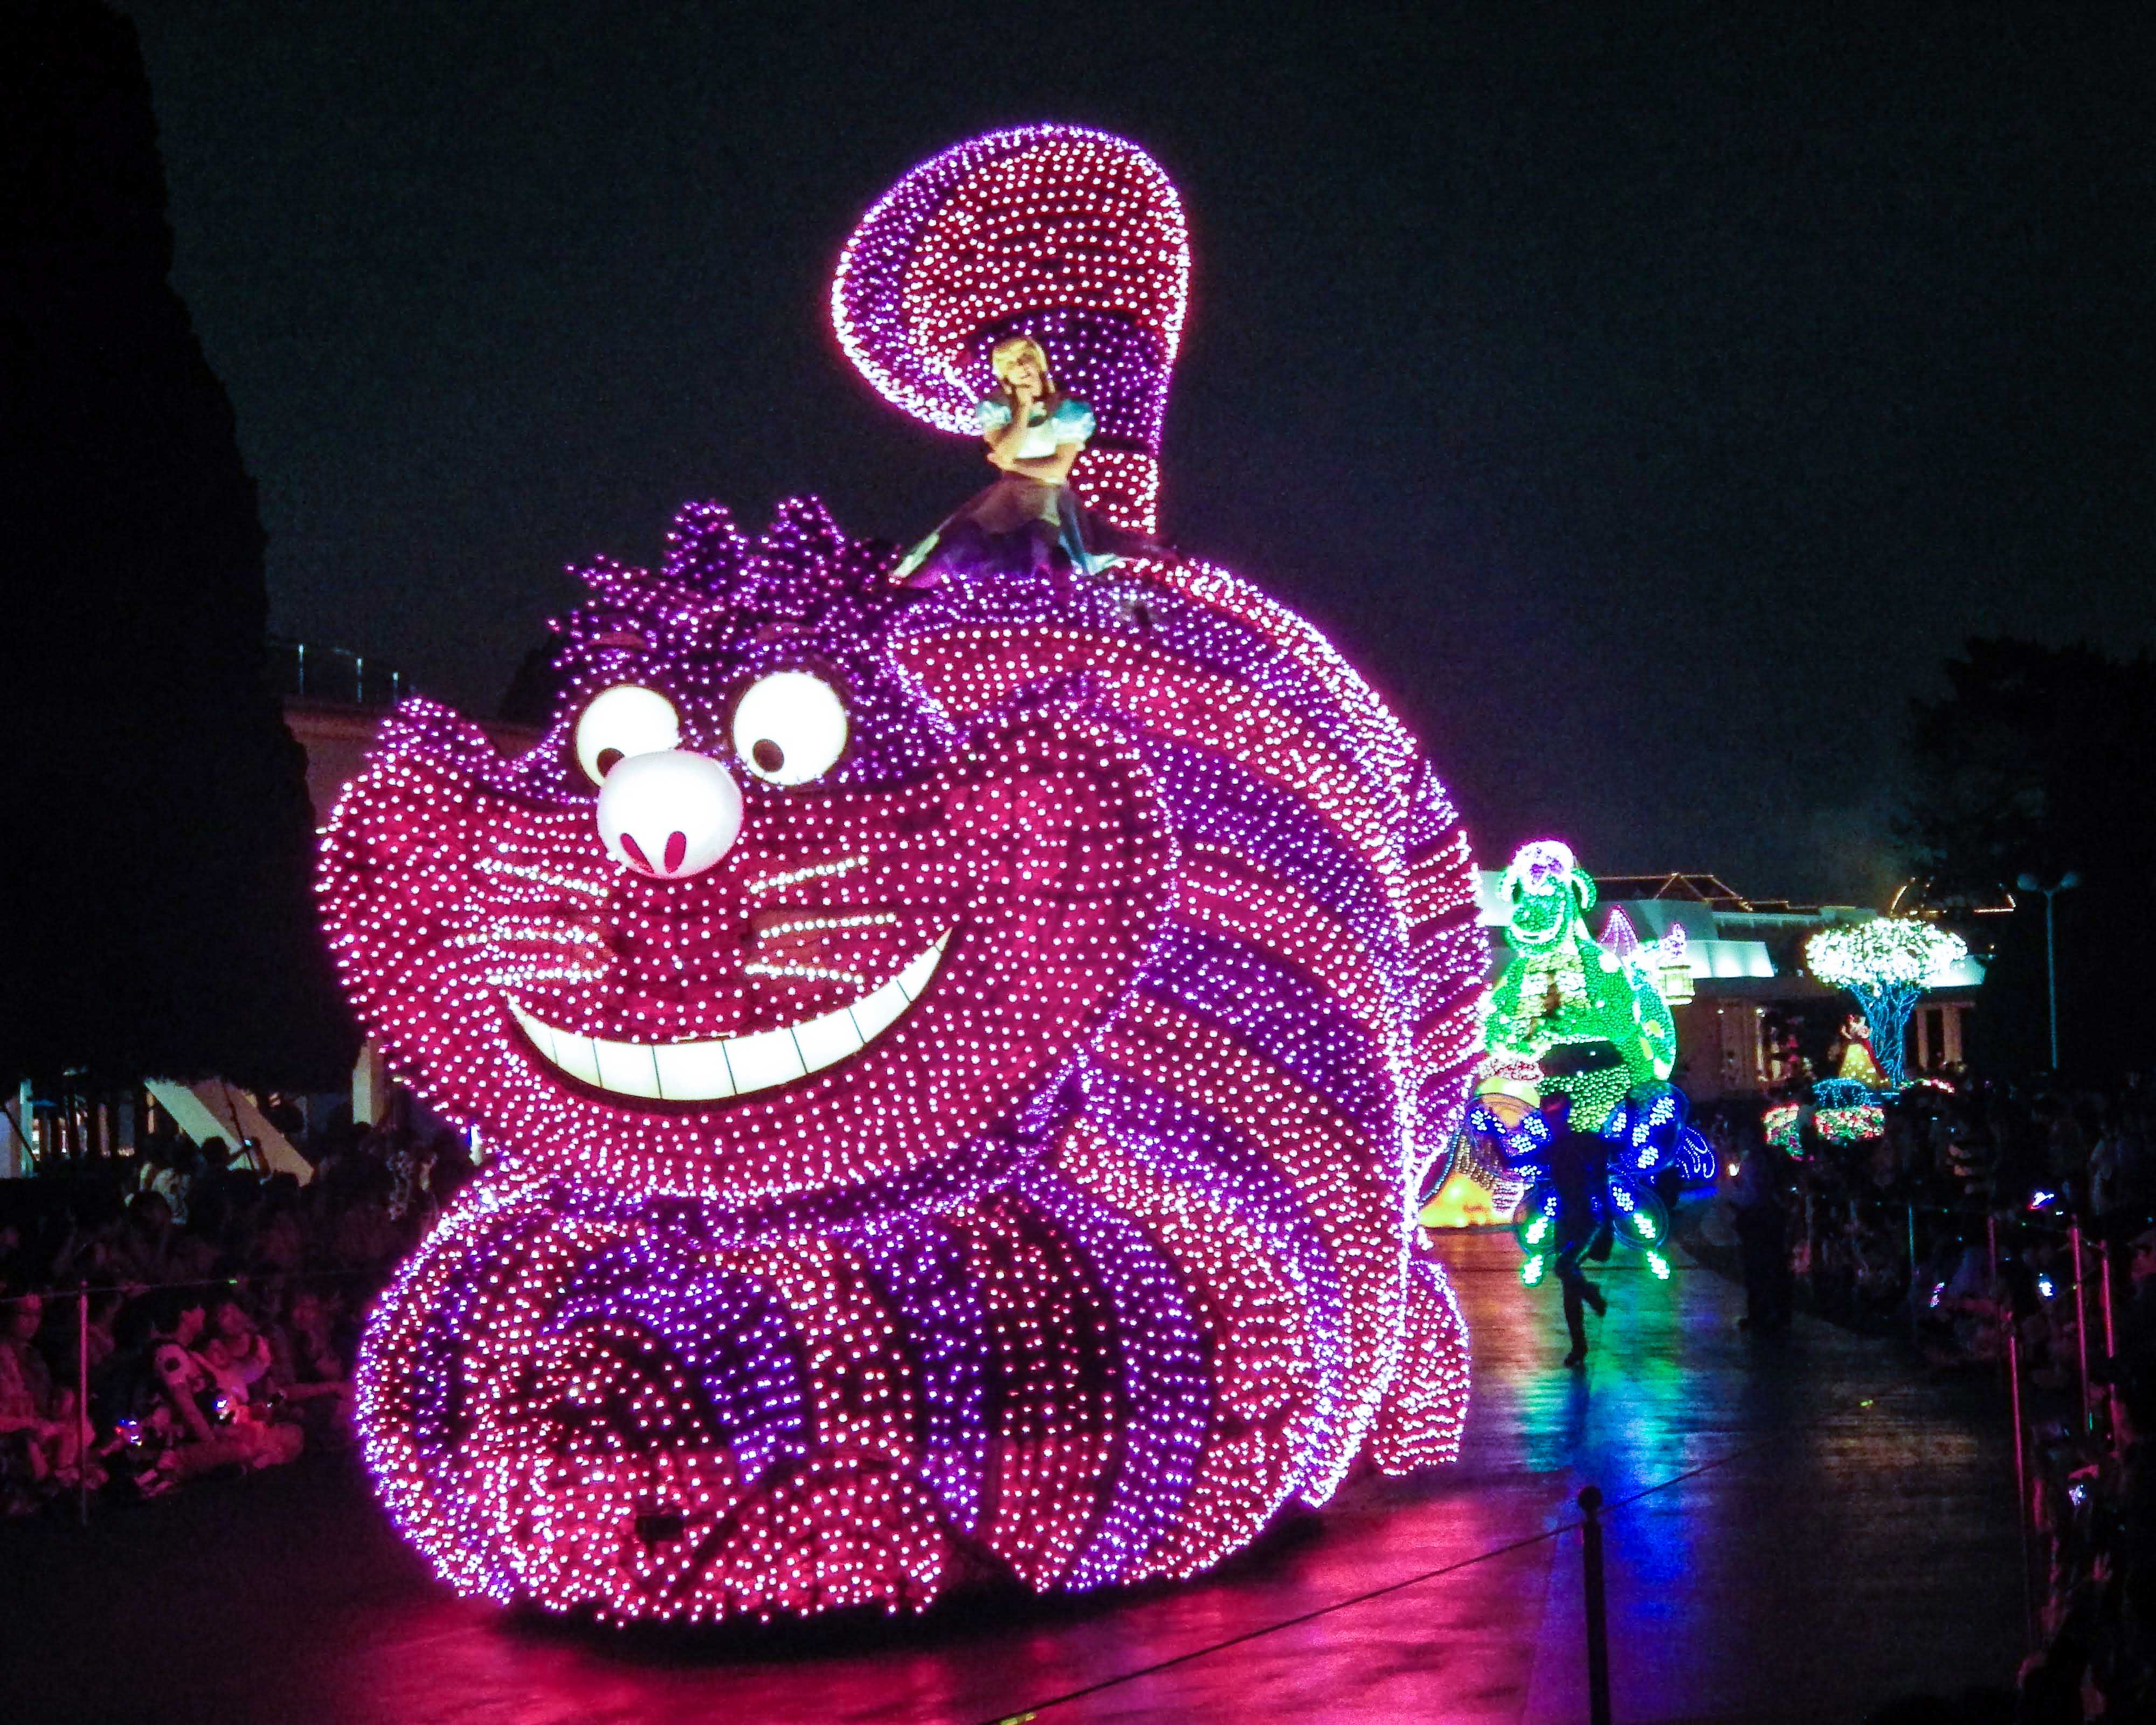 The Cheshire Cat float in the Tokyo Disneyland Electrical Parade.